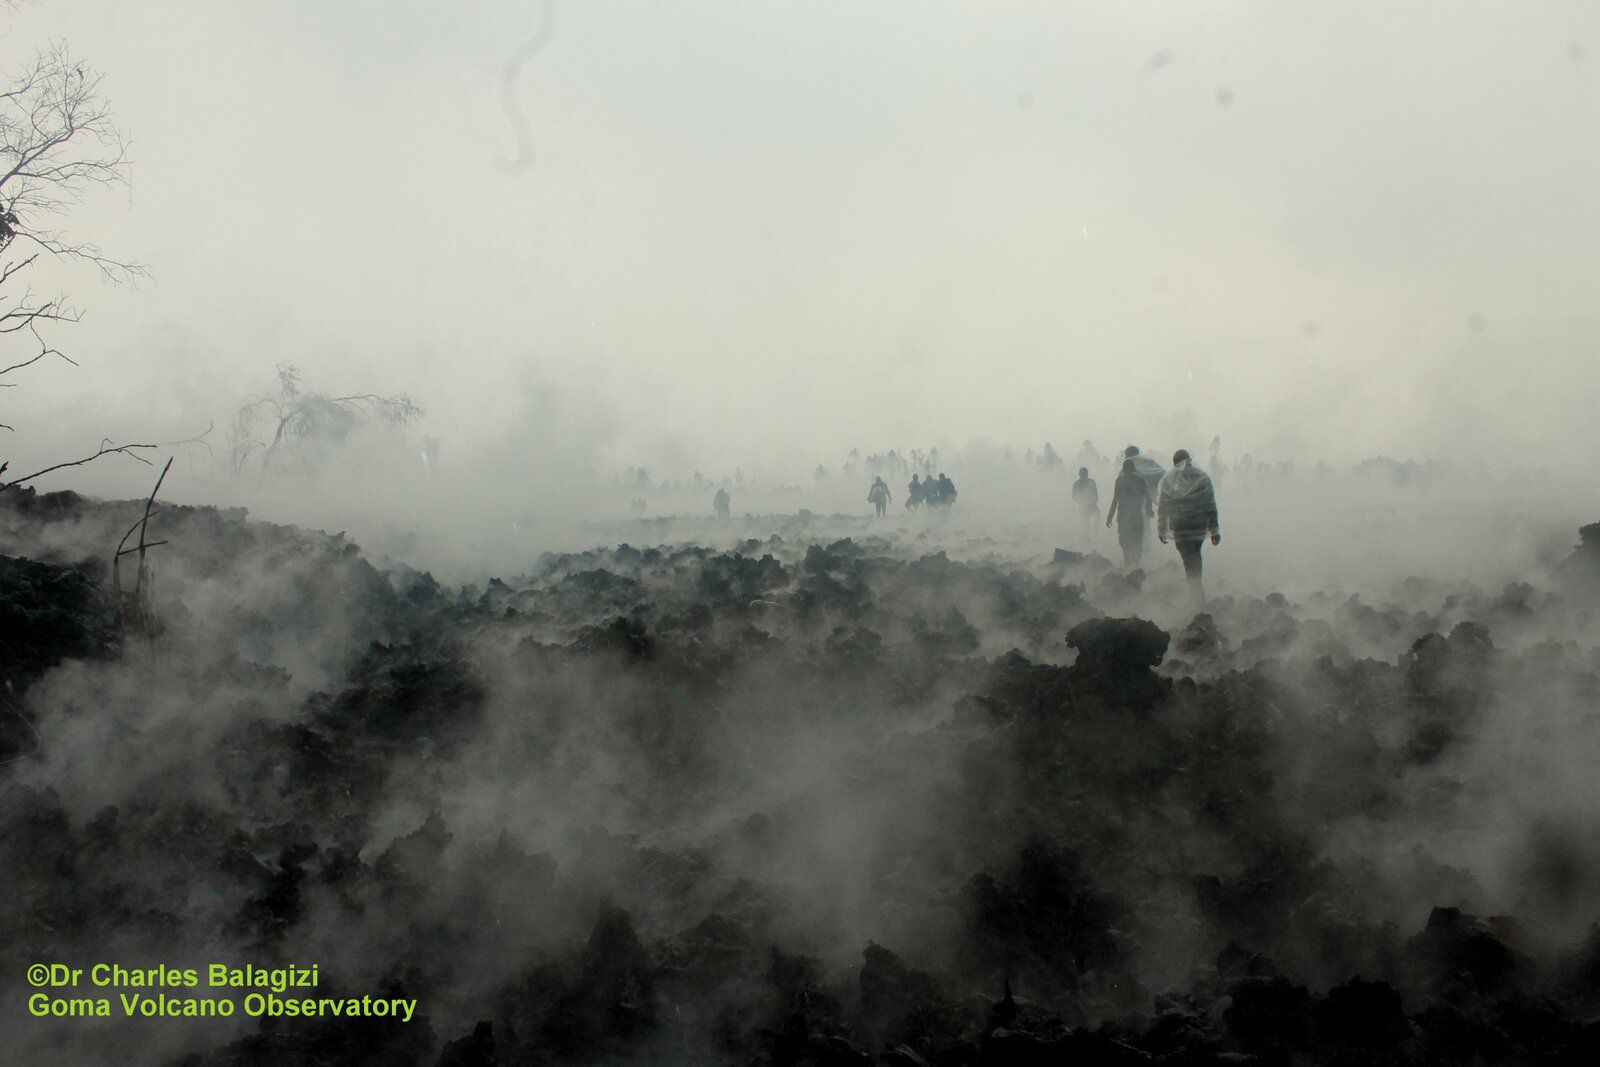 Goma - the inhabitants crossing the still very hot lava flow - photo Dr. Charles Balagizi